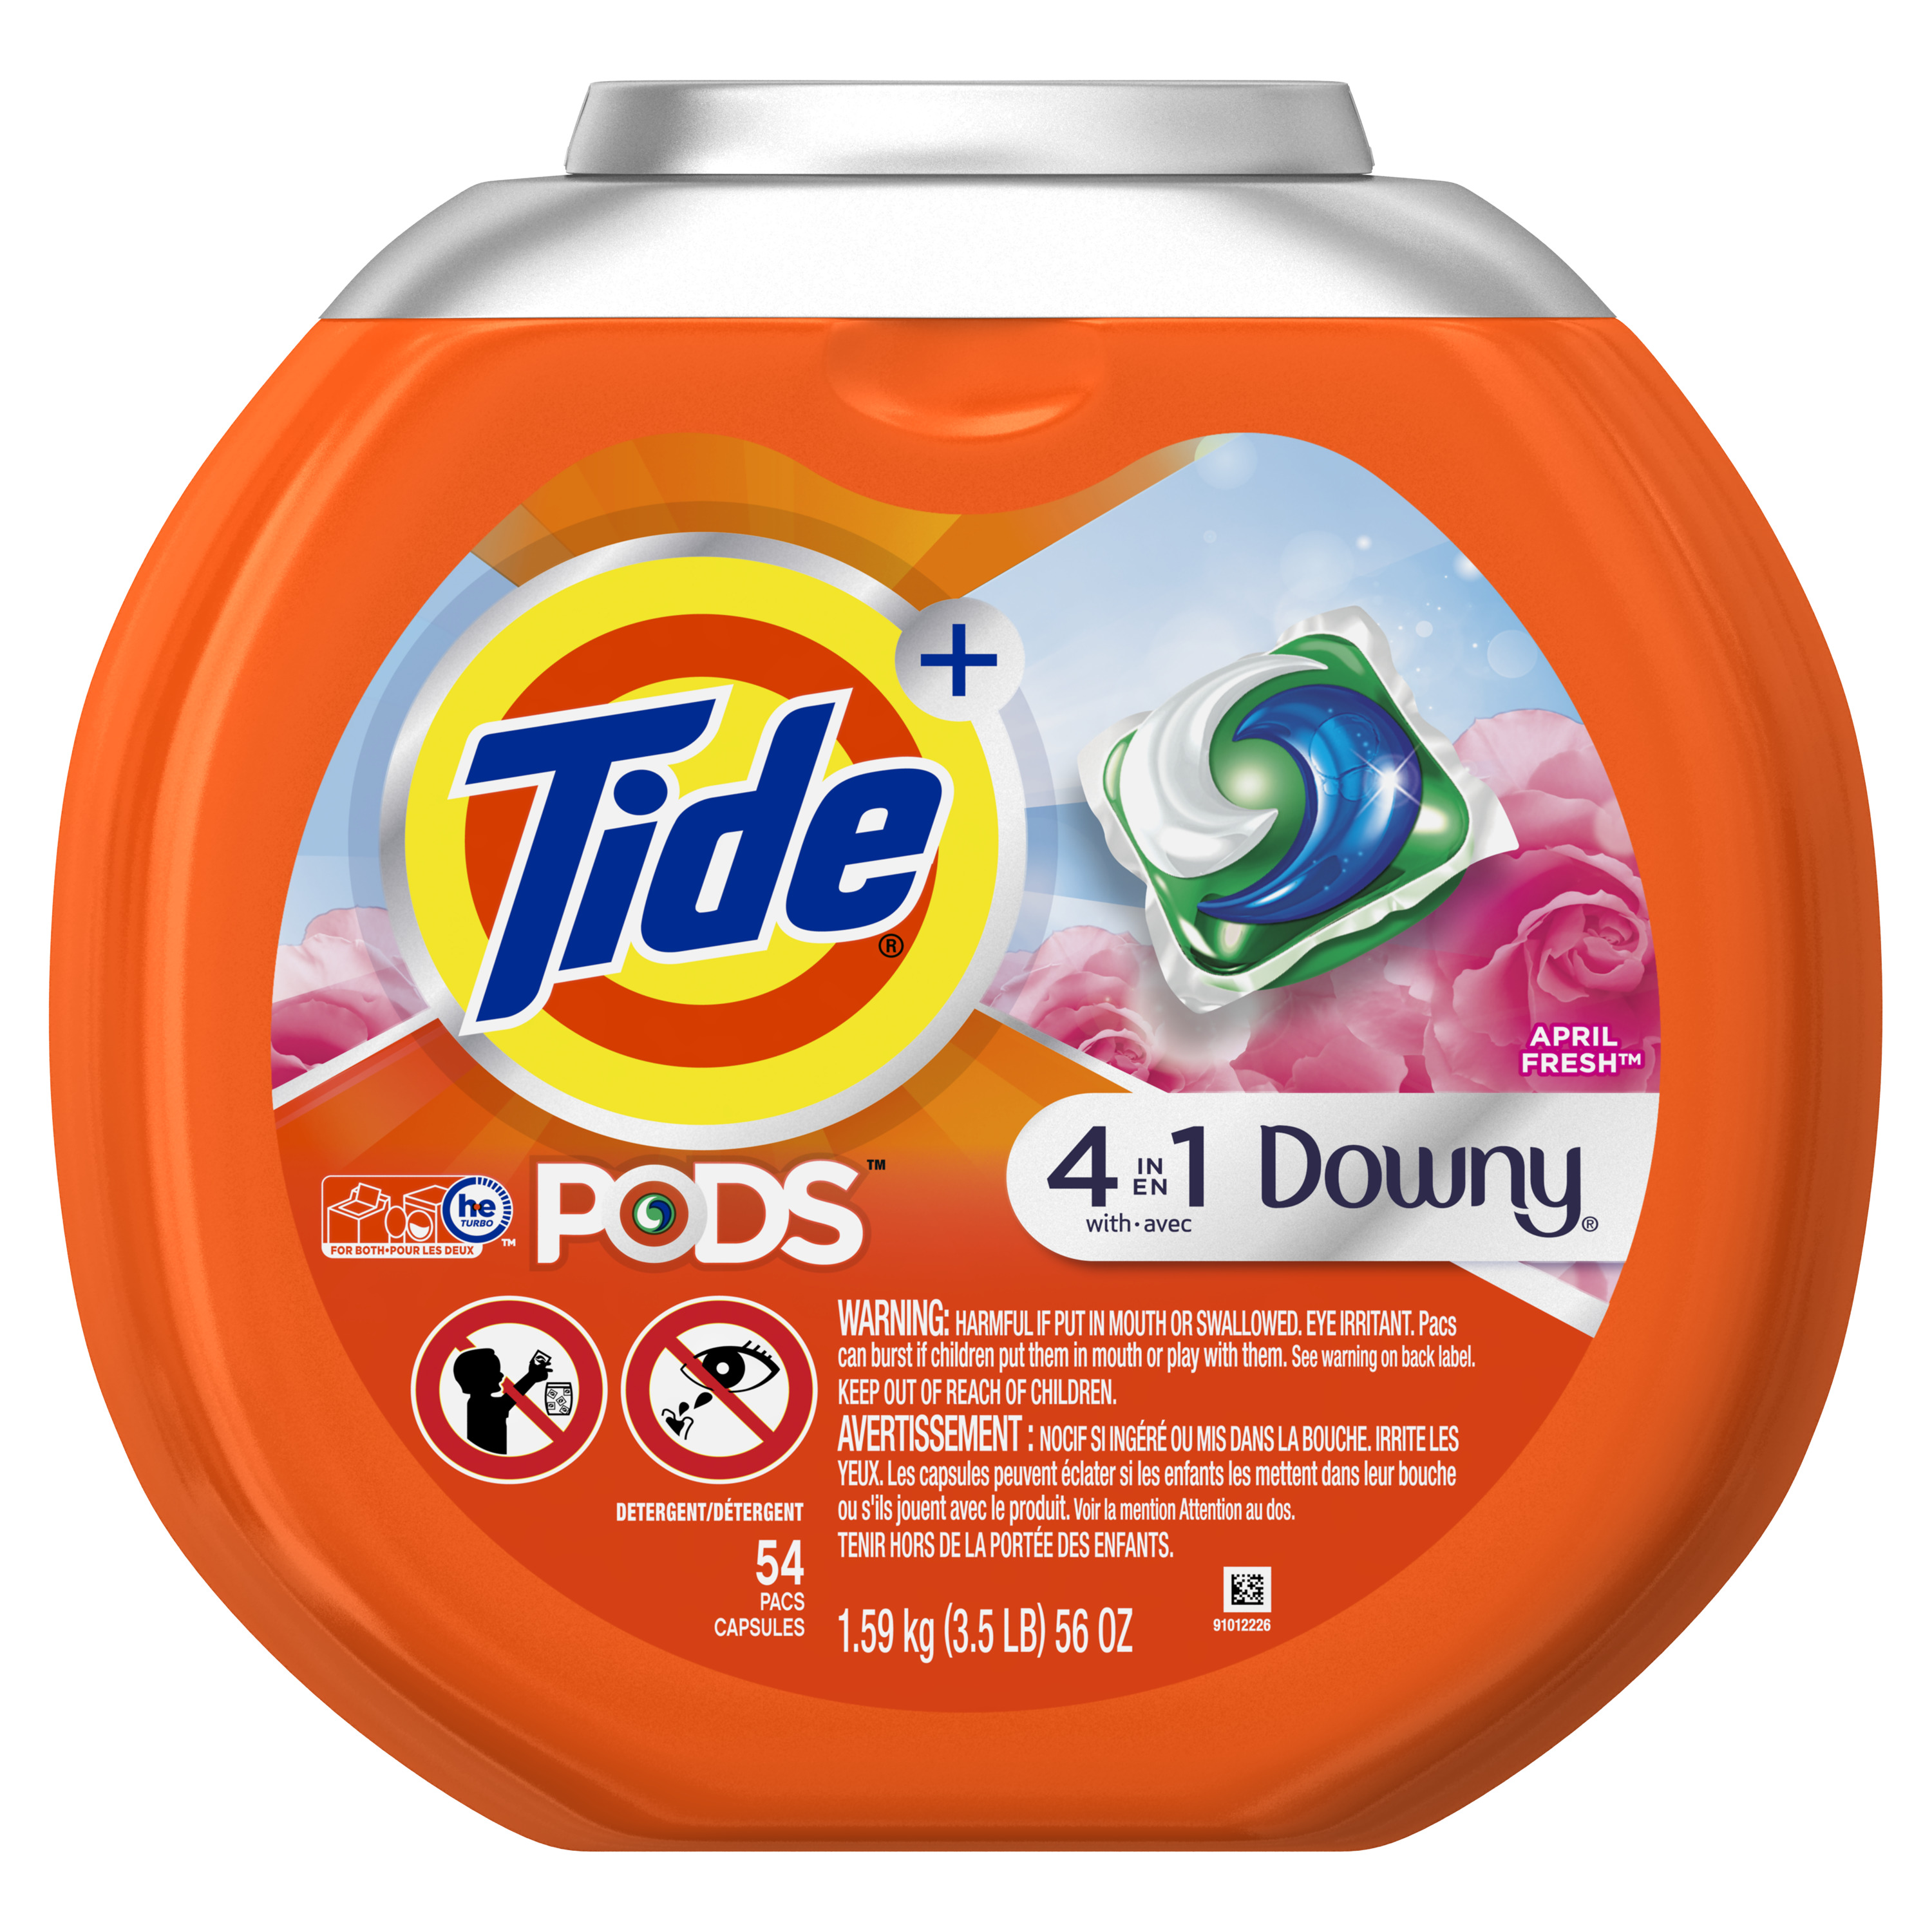 Tide PODS Laundry Detergent Pacs with Downy, April Fresh, 54 count